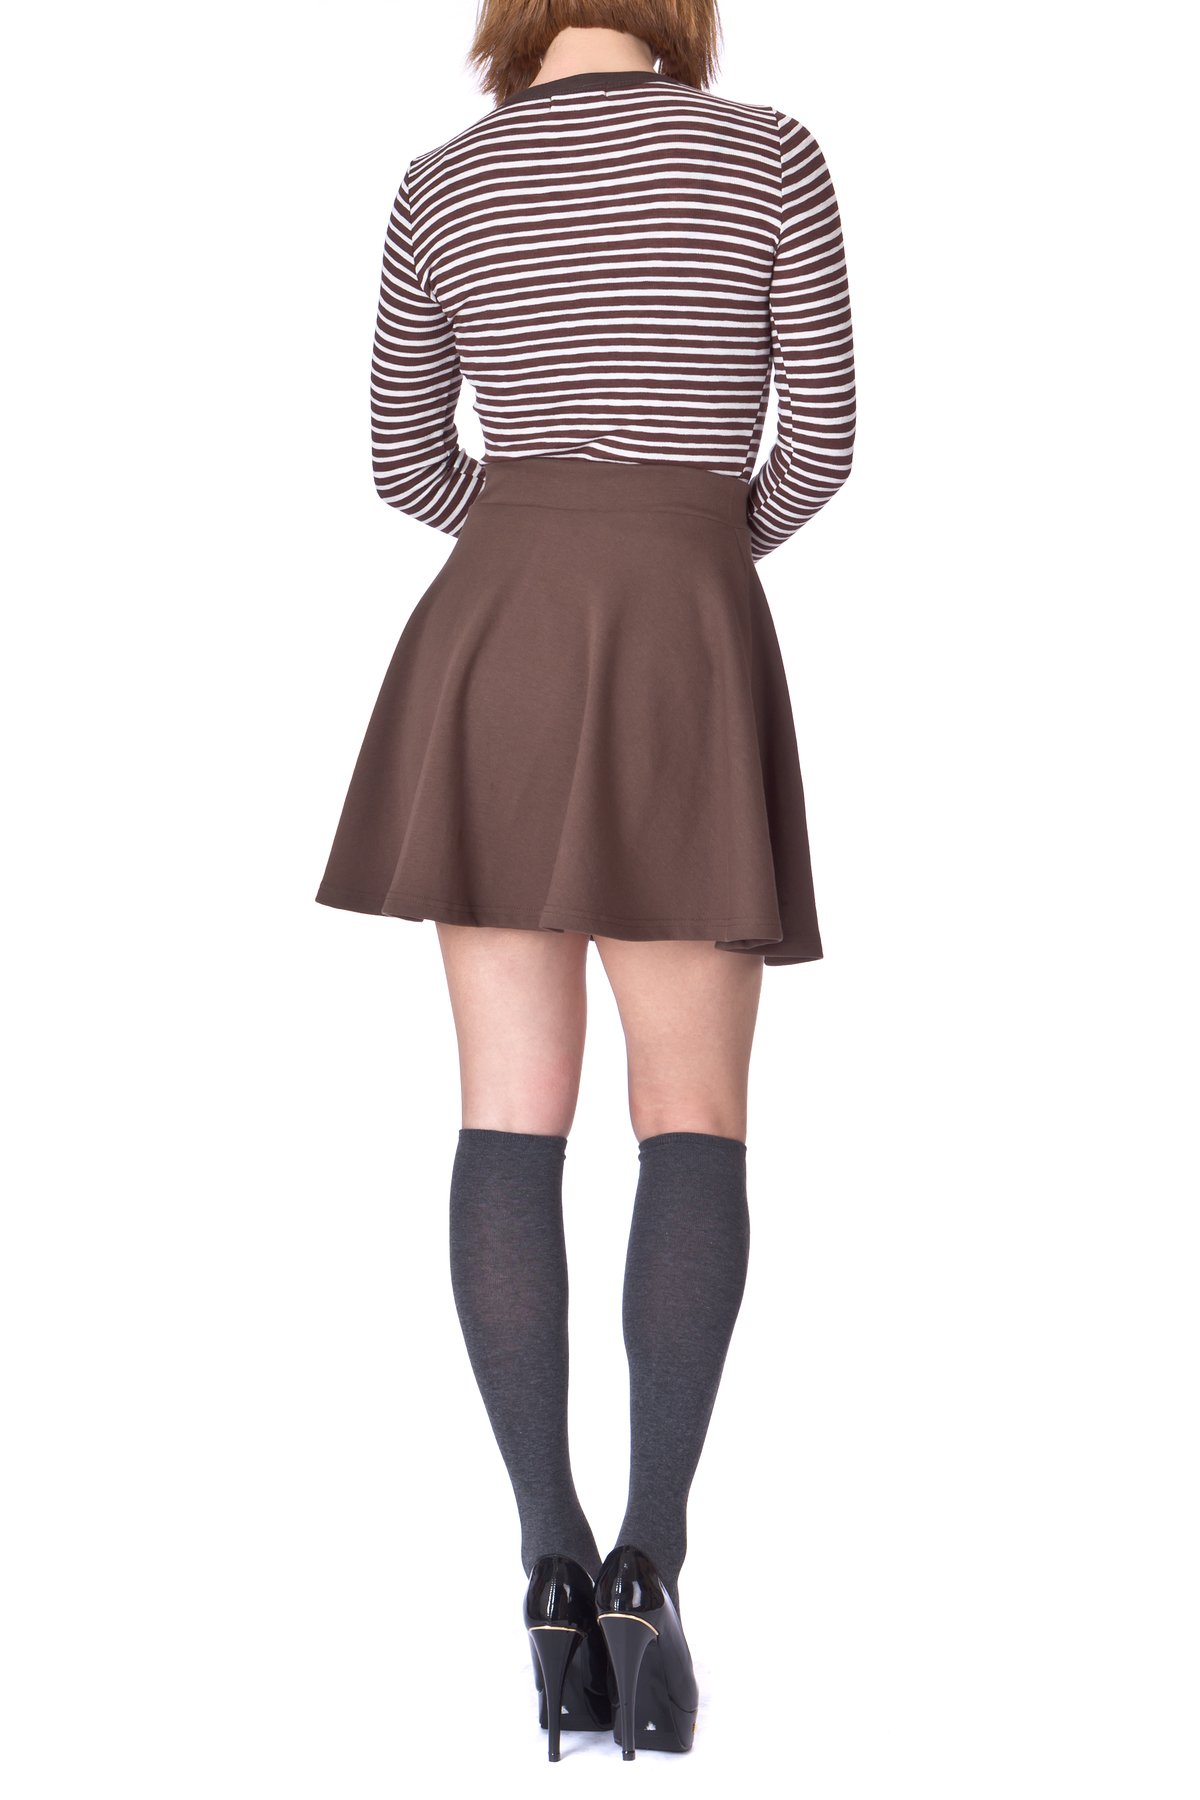 Basic Solid Stretchy Cotton High Waist A line Flared Skater Mini Skirt Brown 3